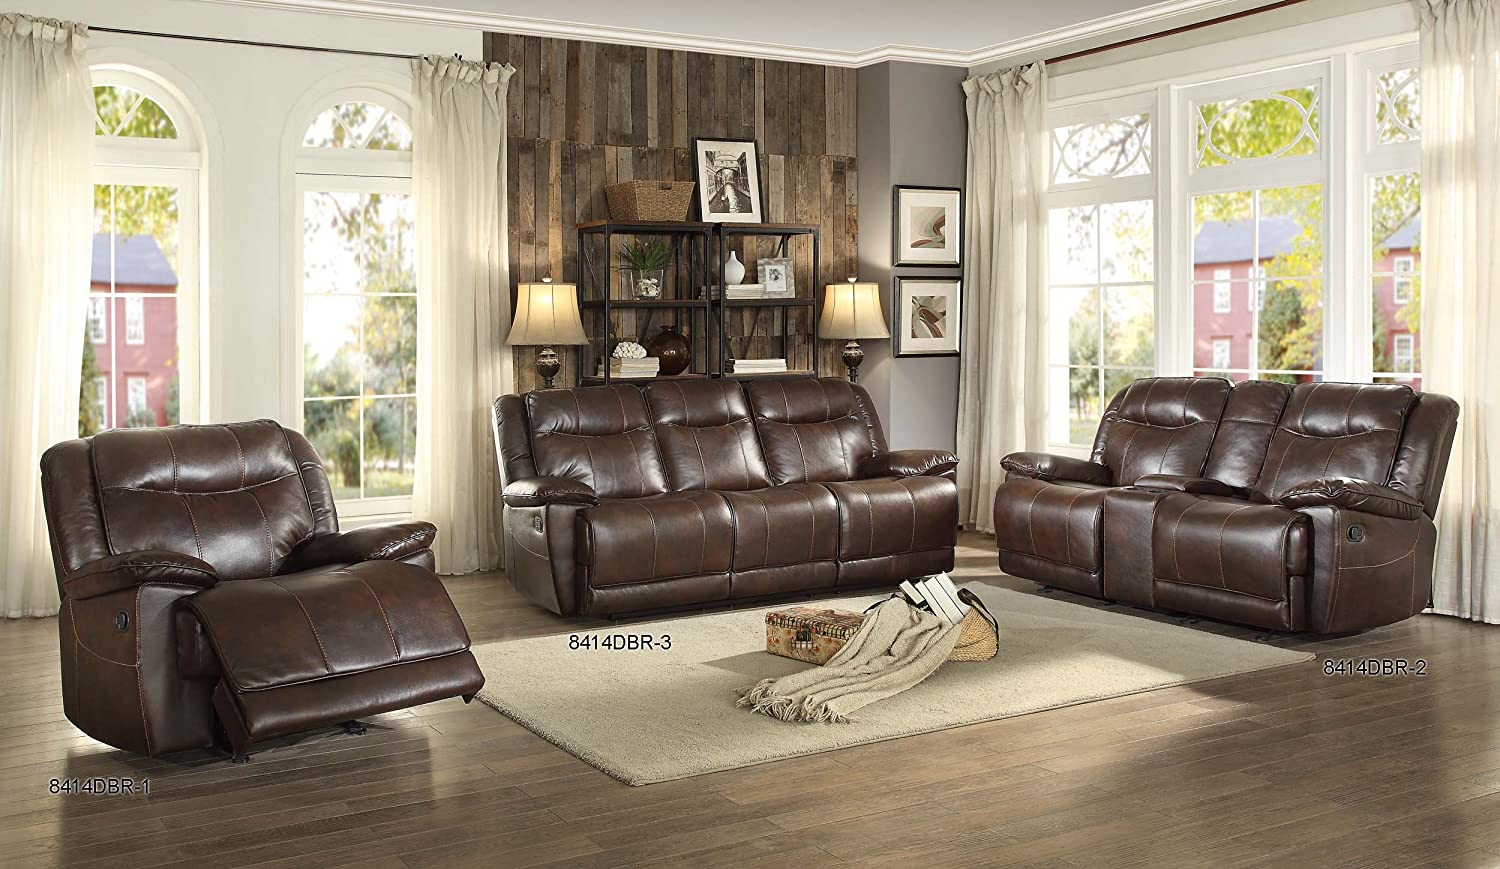 Amazon.com Homelegance Triple Reclining Sofa in Dark Brown Leather Gel Match Kitchen u0026 Dining & Amazon.com: Homelegance Triple Reclining Sofa in Dark Brown ... islam-shia.org